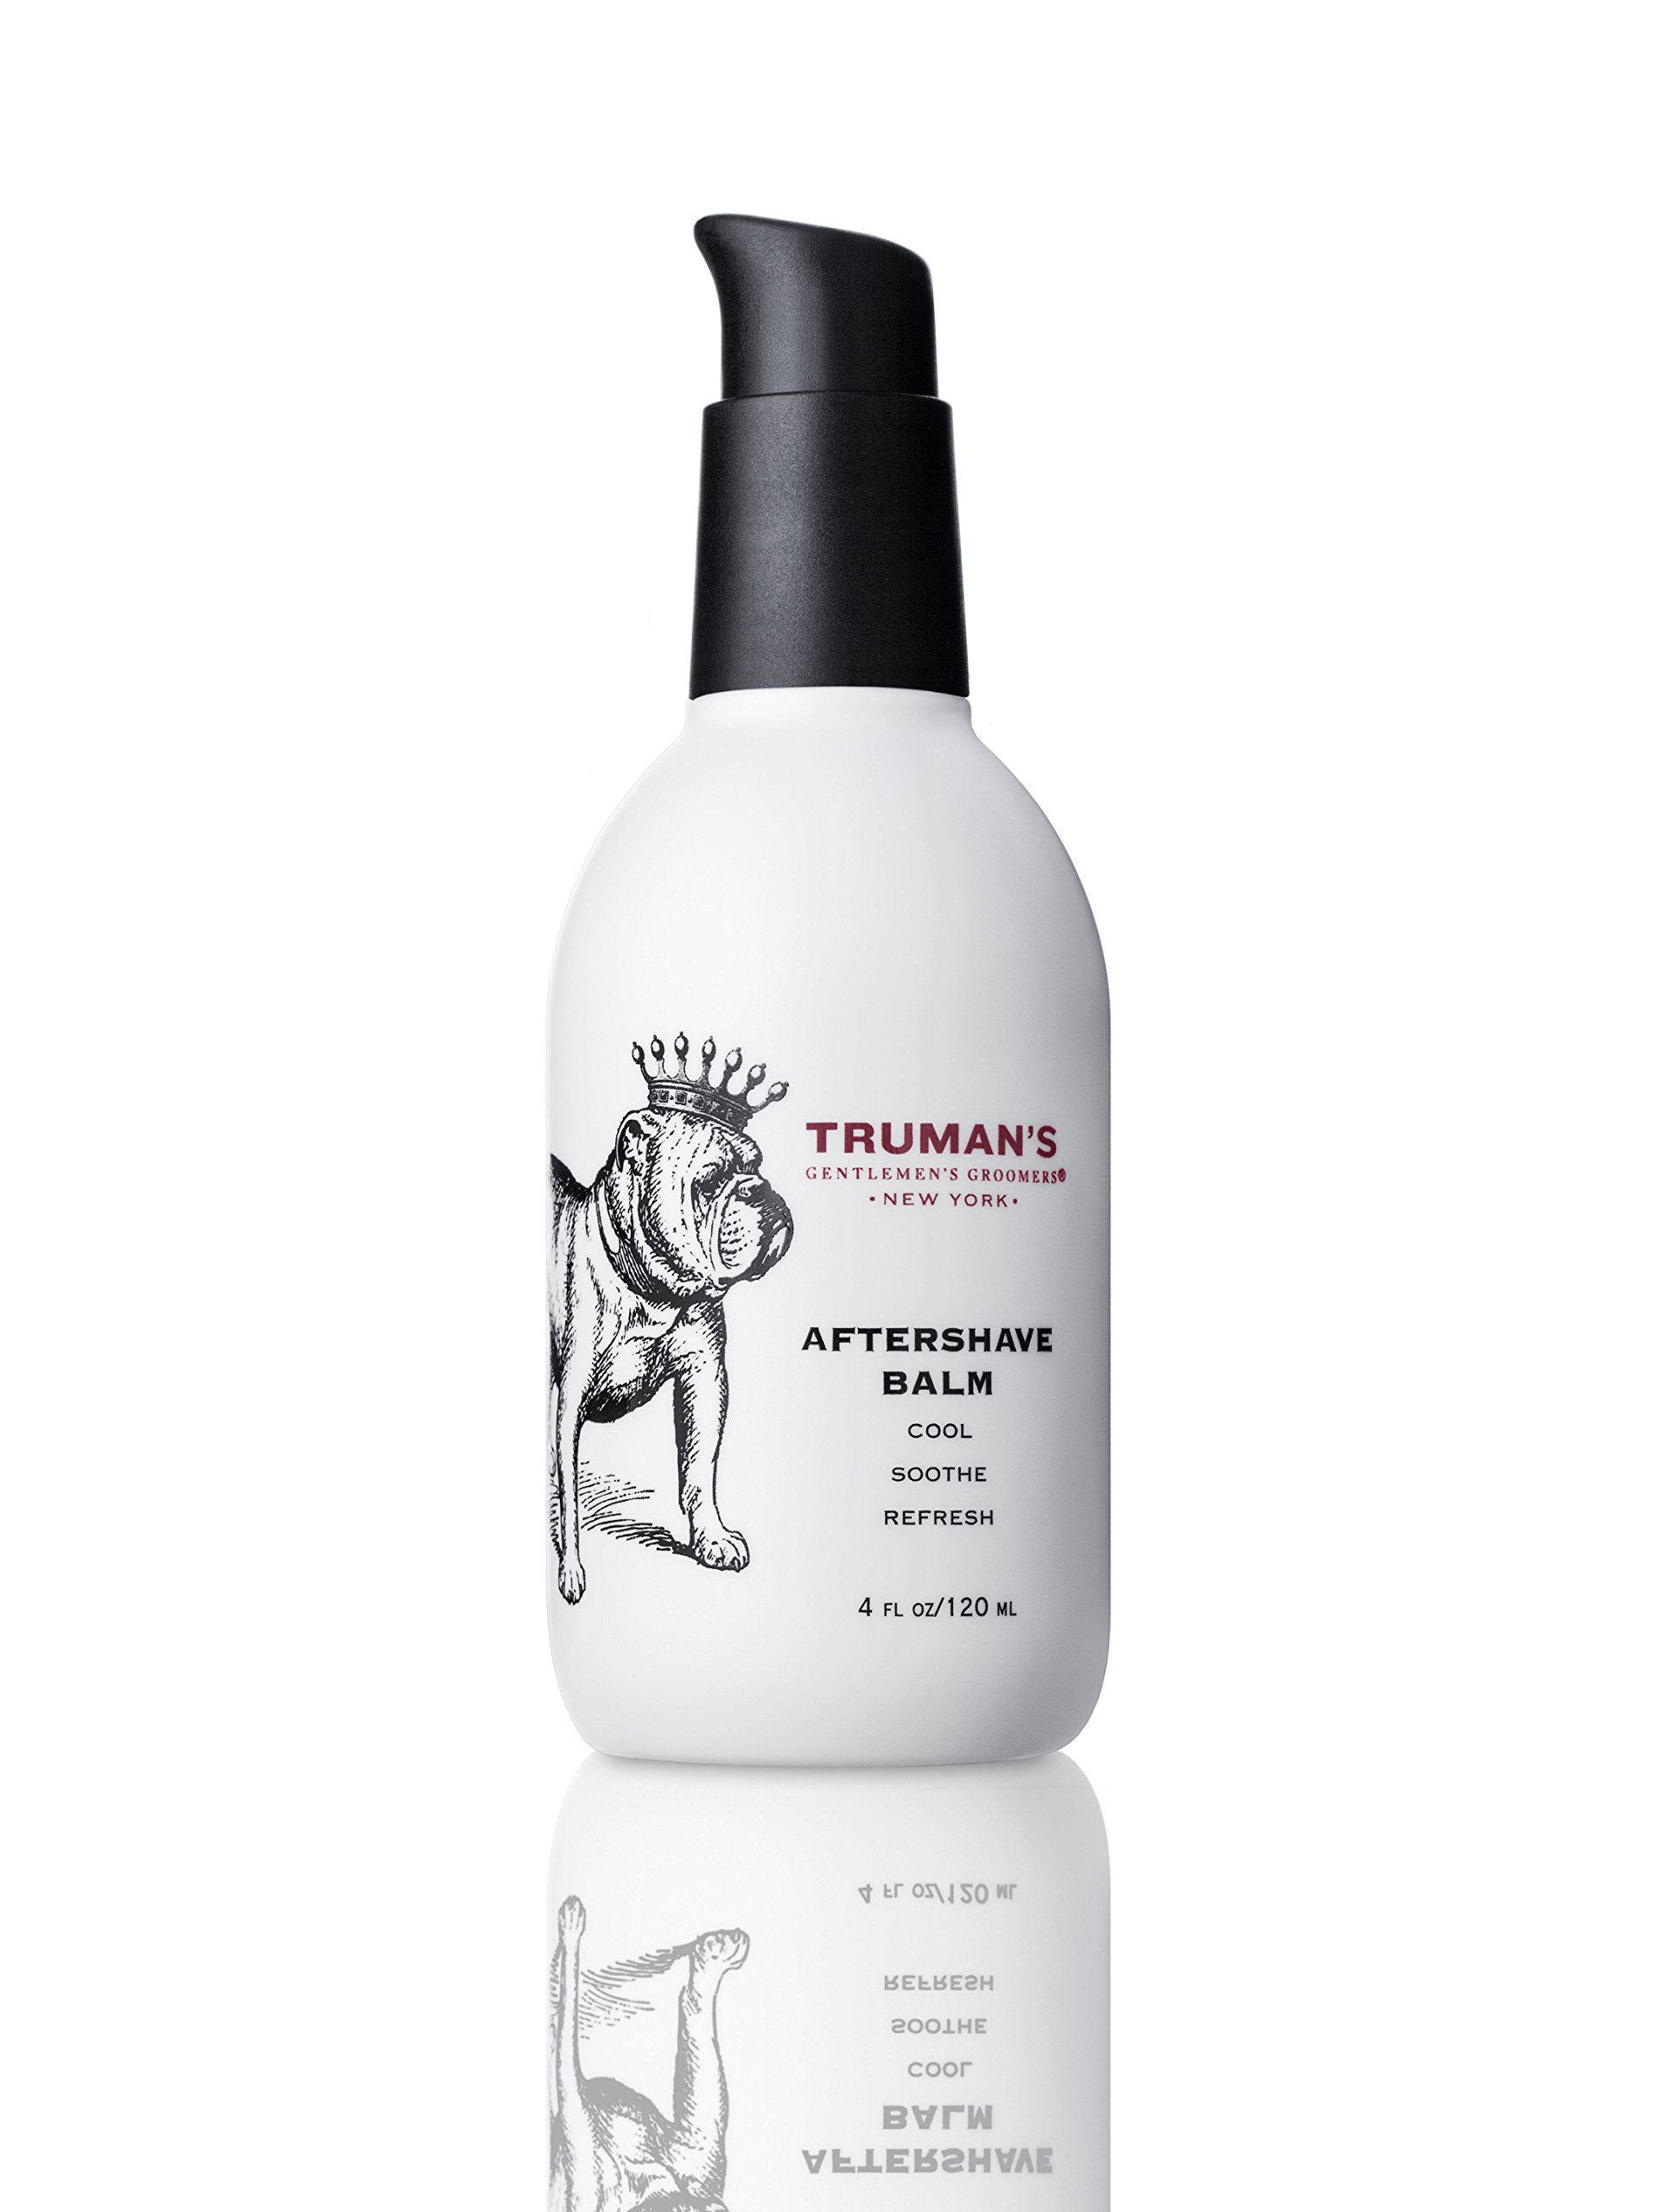 Truman's Gentlemen's Groomers Men's Aftershave Balm - Premium After-Shave Lotion, Soothe & Moisturize Face After Shaving for Manly Smooth Skin - Prevents Razor Burn & Hydrates 4oz